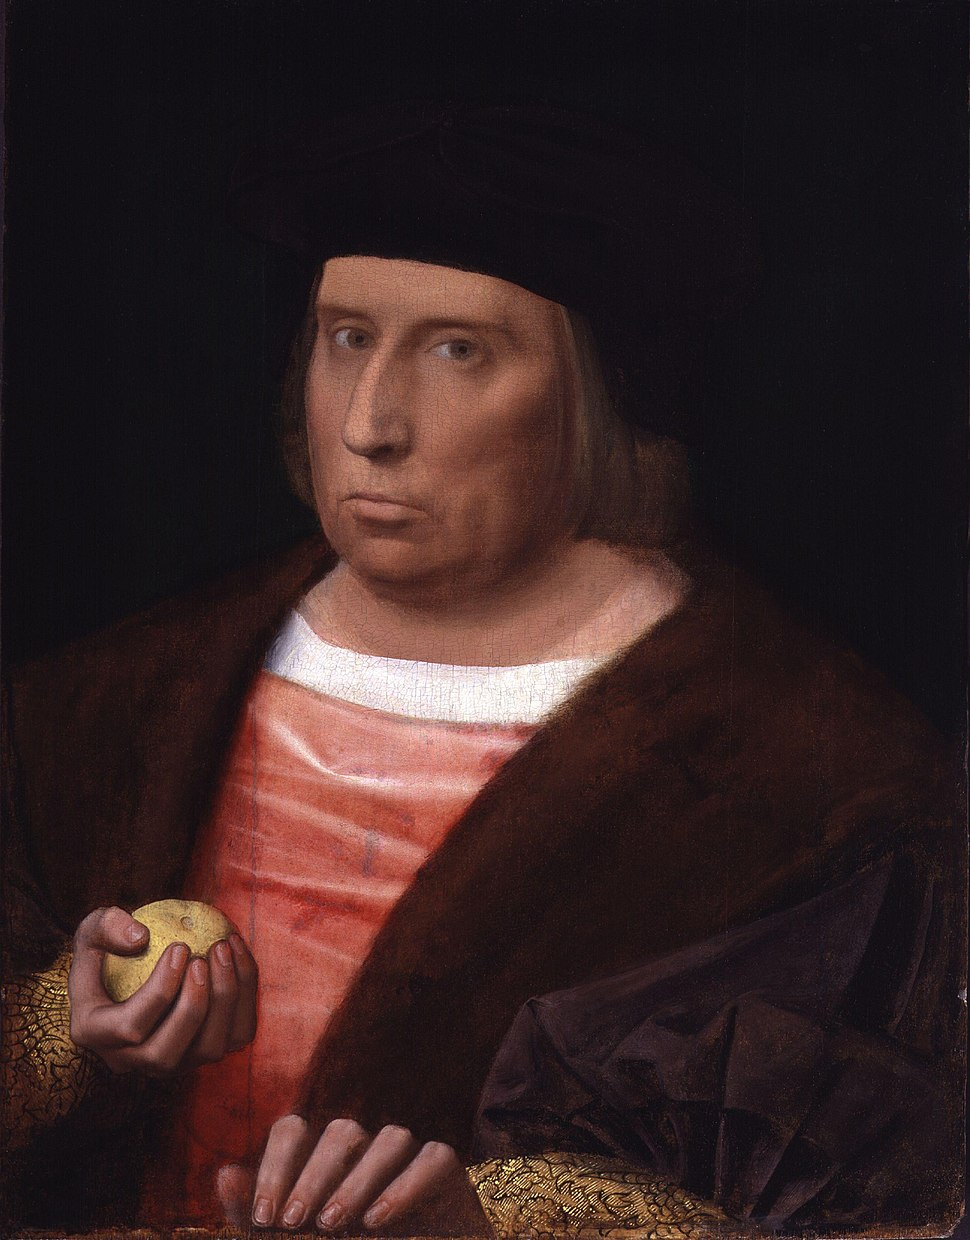 John Bourchier, 2nd Baron Berners by Ambrosius Benson